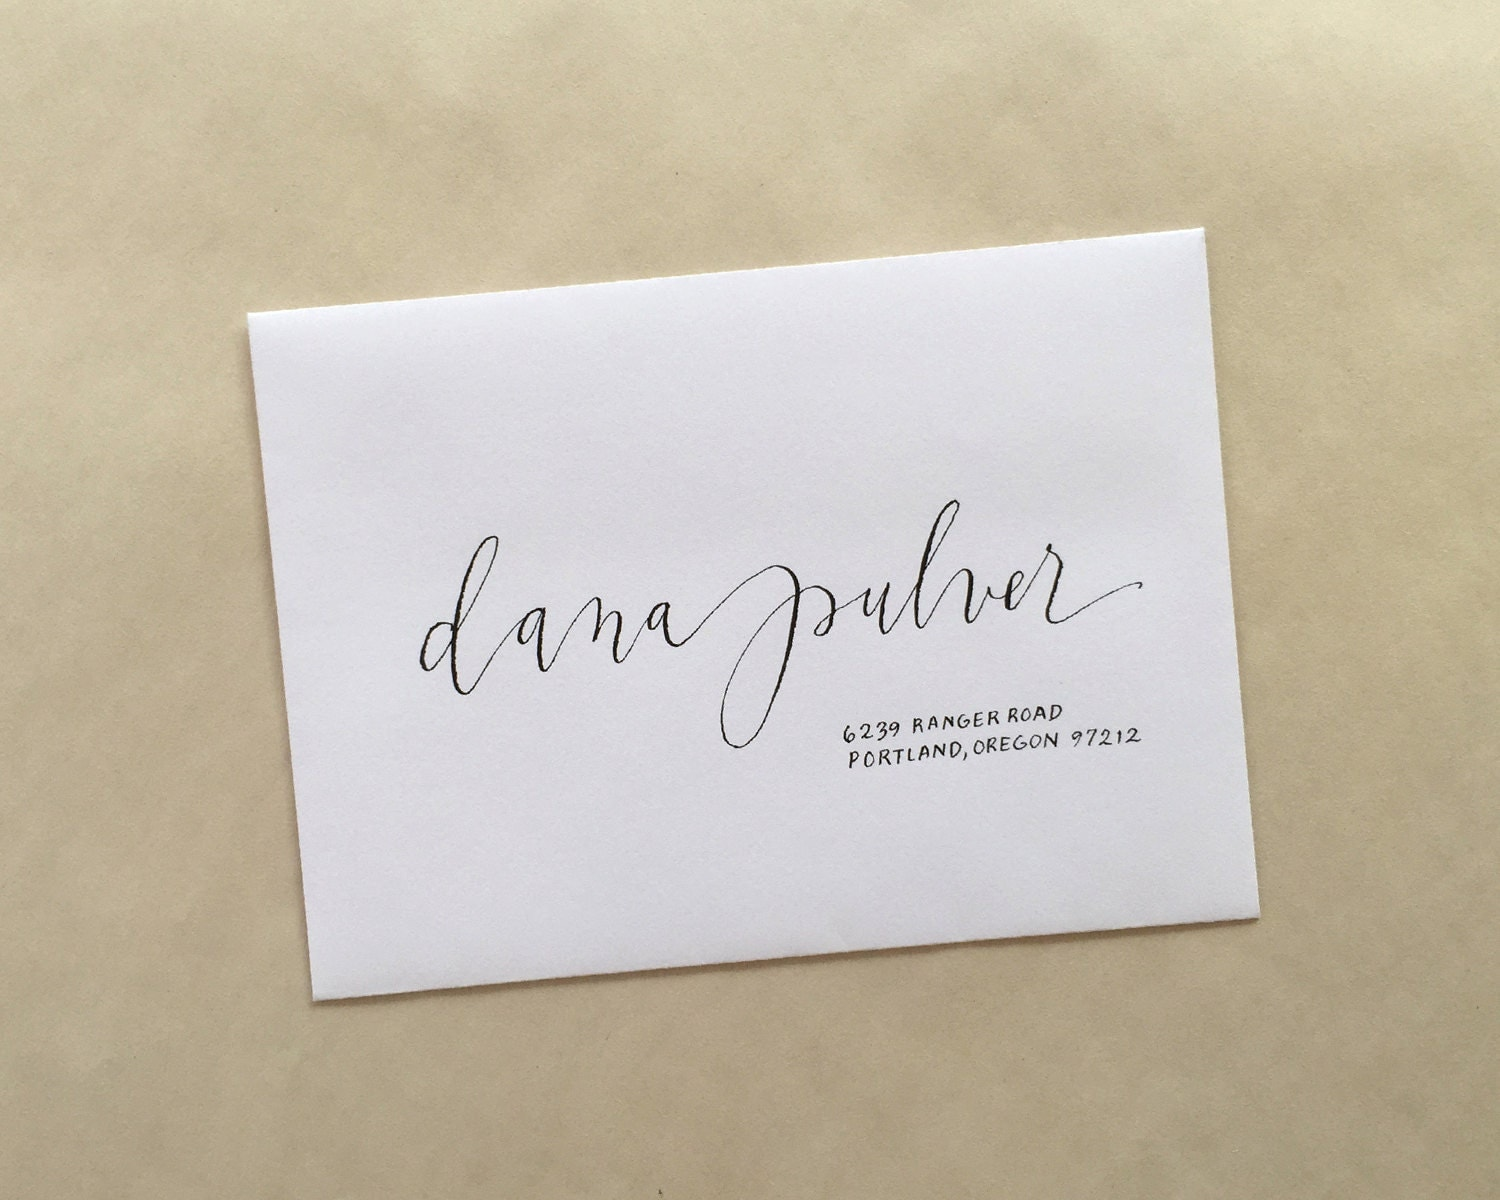 Modern calligraphy envelope addressing by portlandpalomino